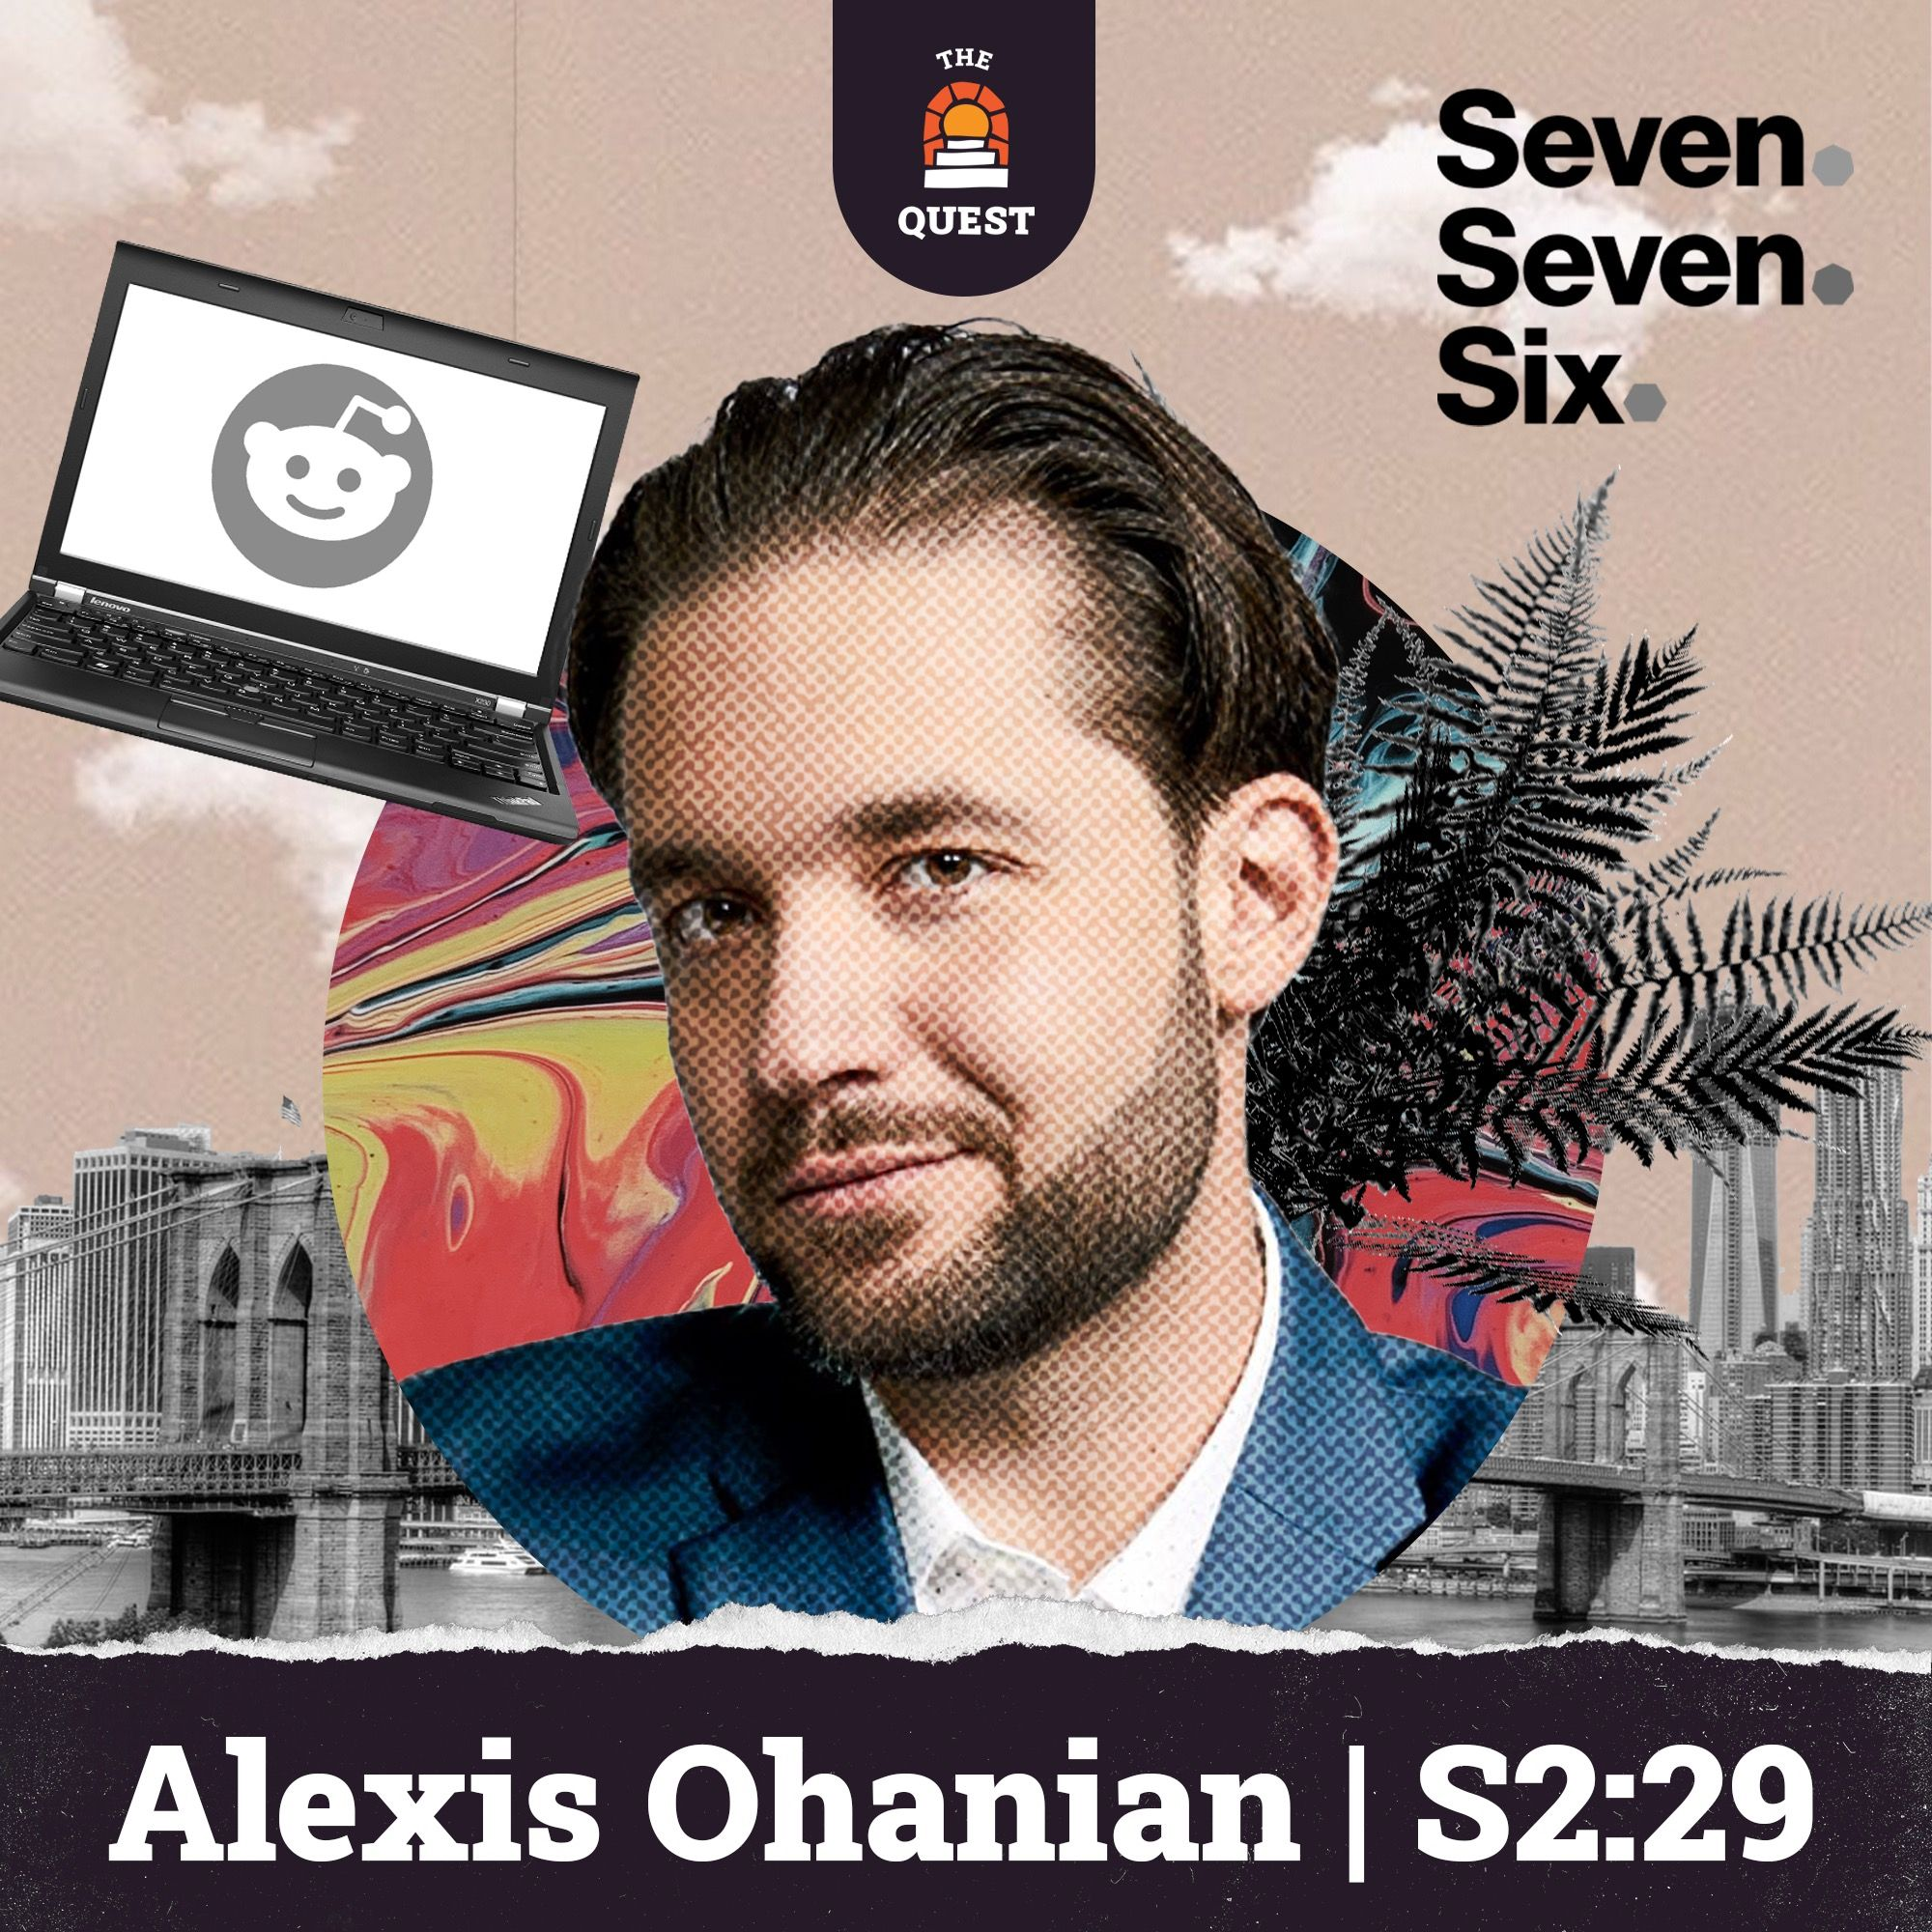 Alexis Ohanian: Reddit Founder, Y-Combinator, Seven Seven Six, Parenting, Investing